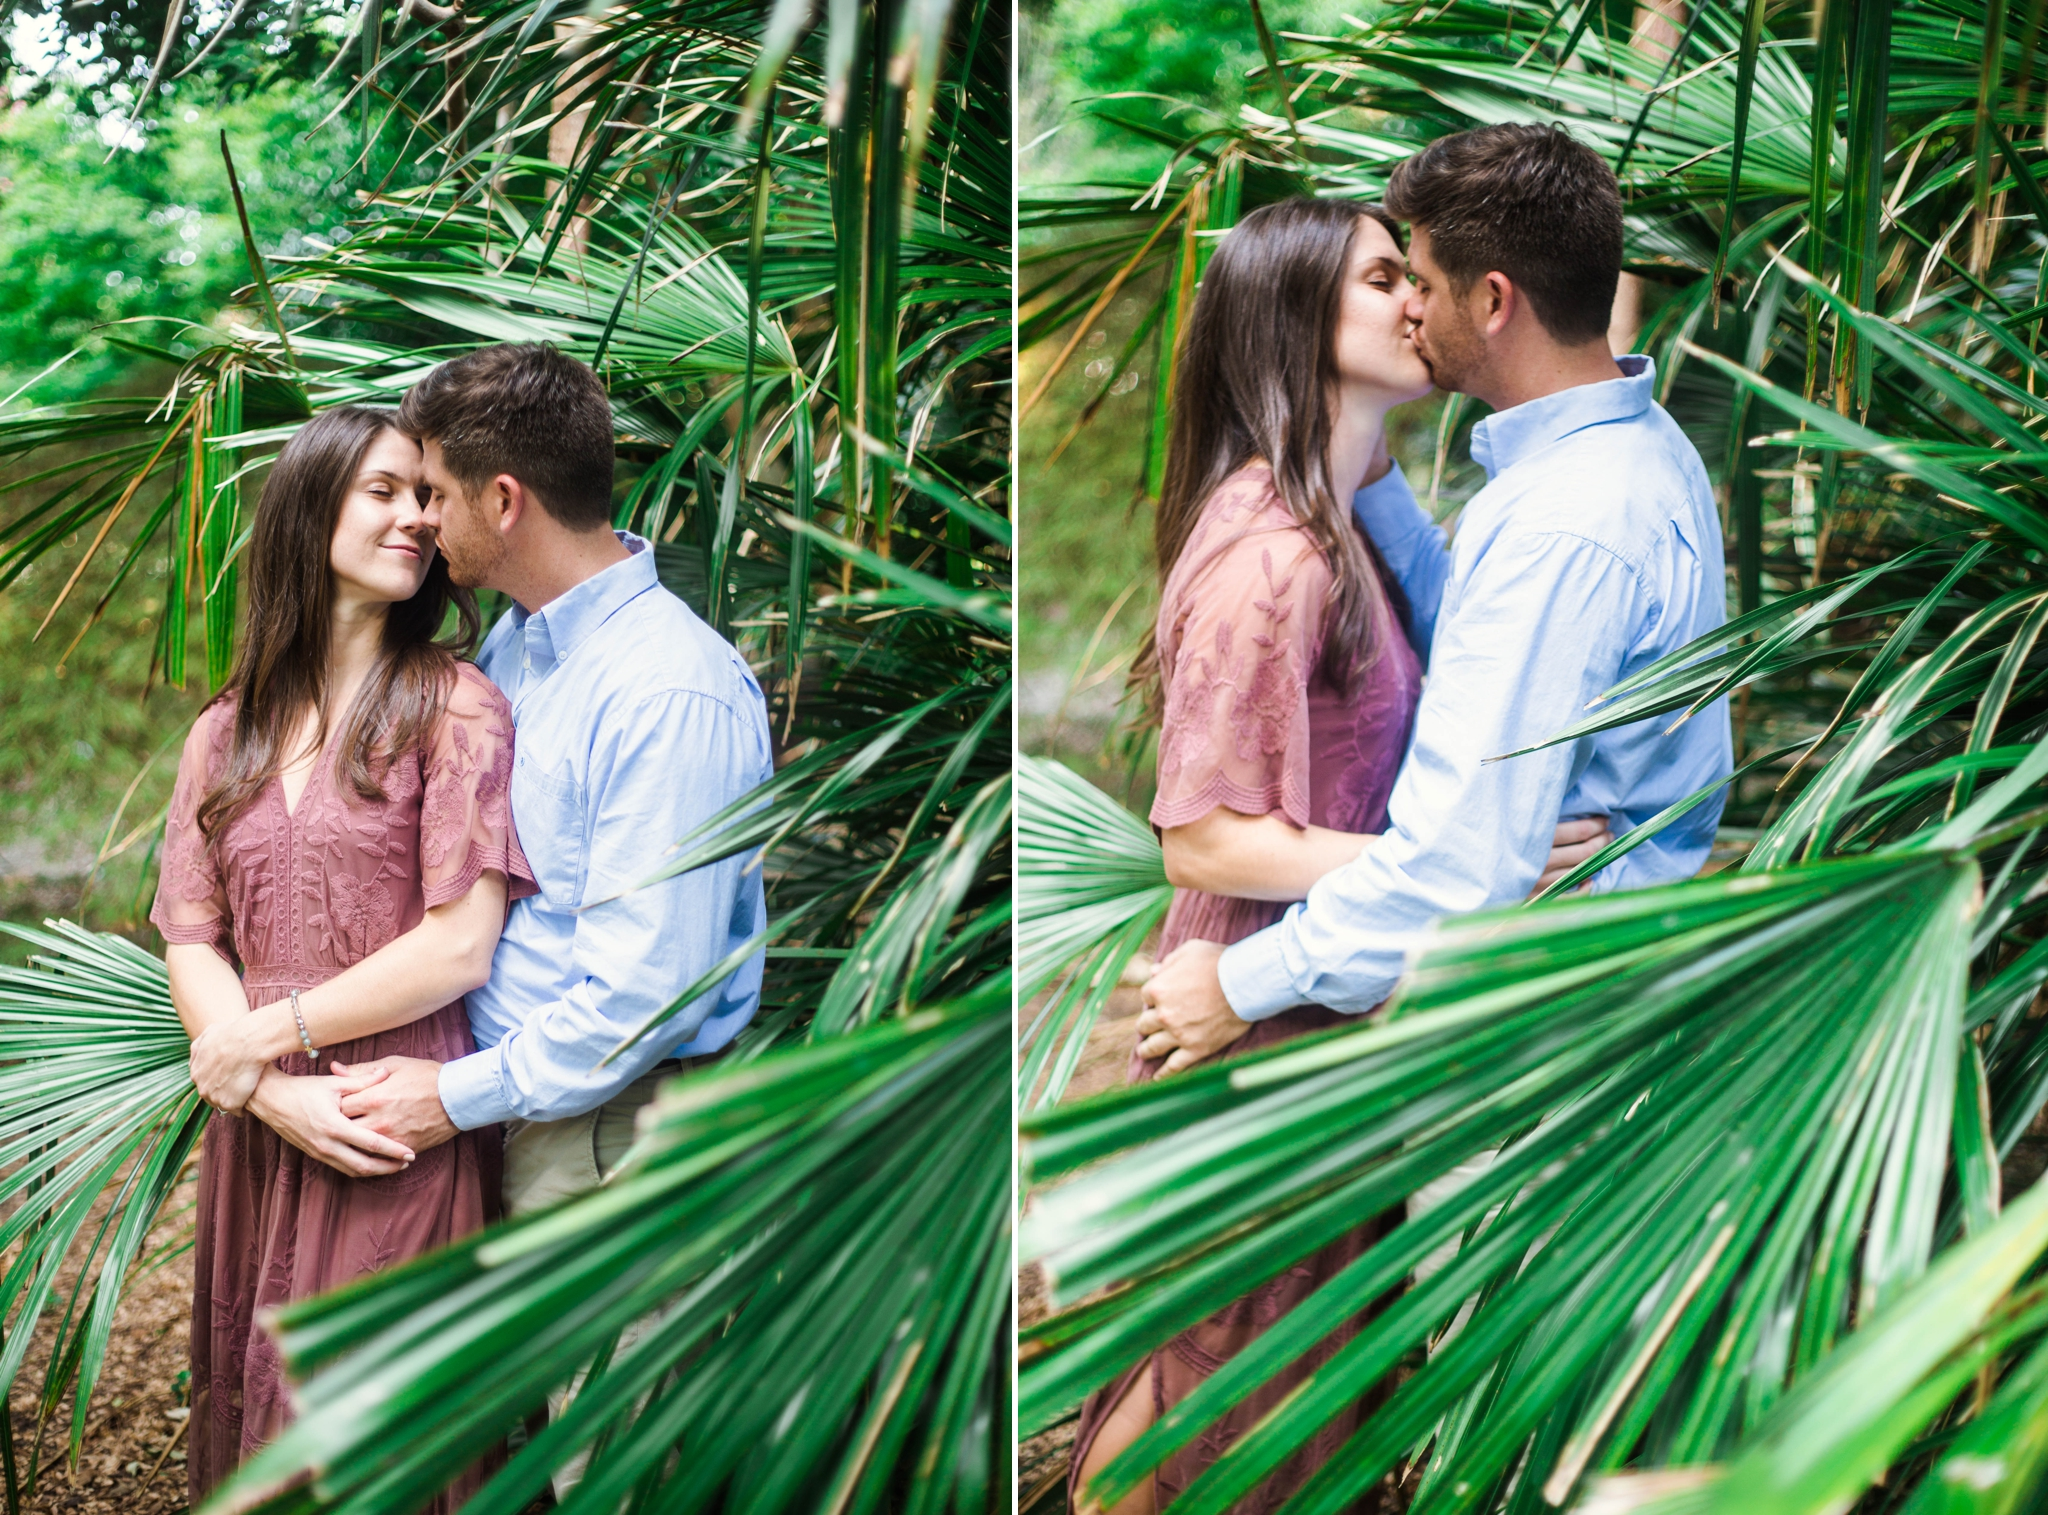 Tropical Engagement - Aryn + Tyler -  Photography Session at the JC Raulston Arboretum - Raleigh Wedding Photographer